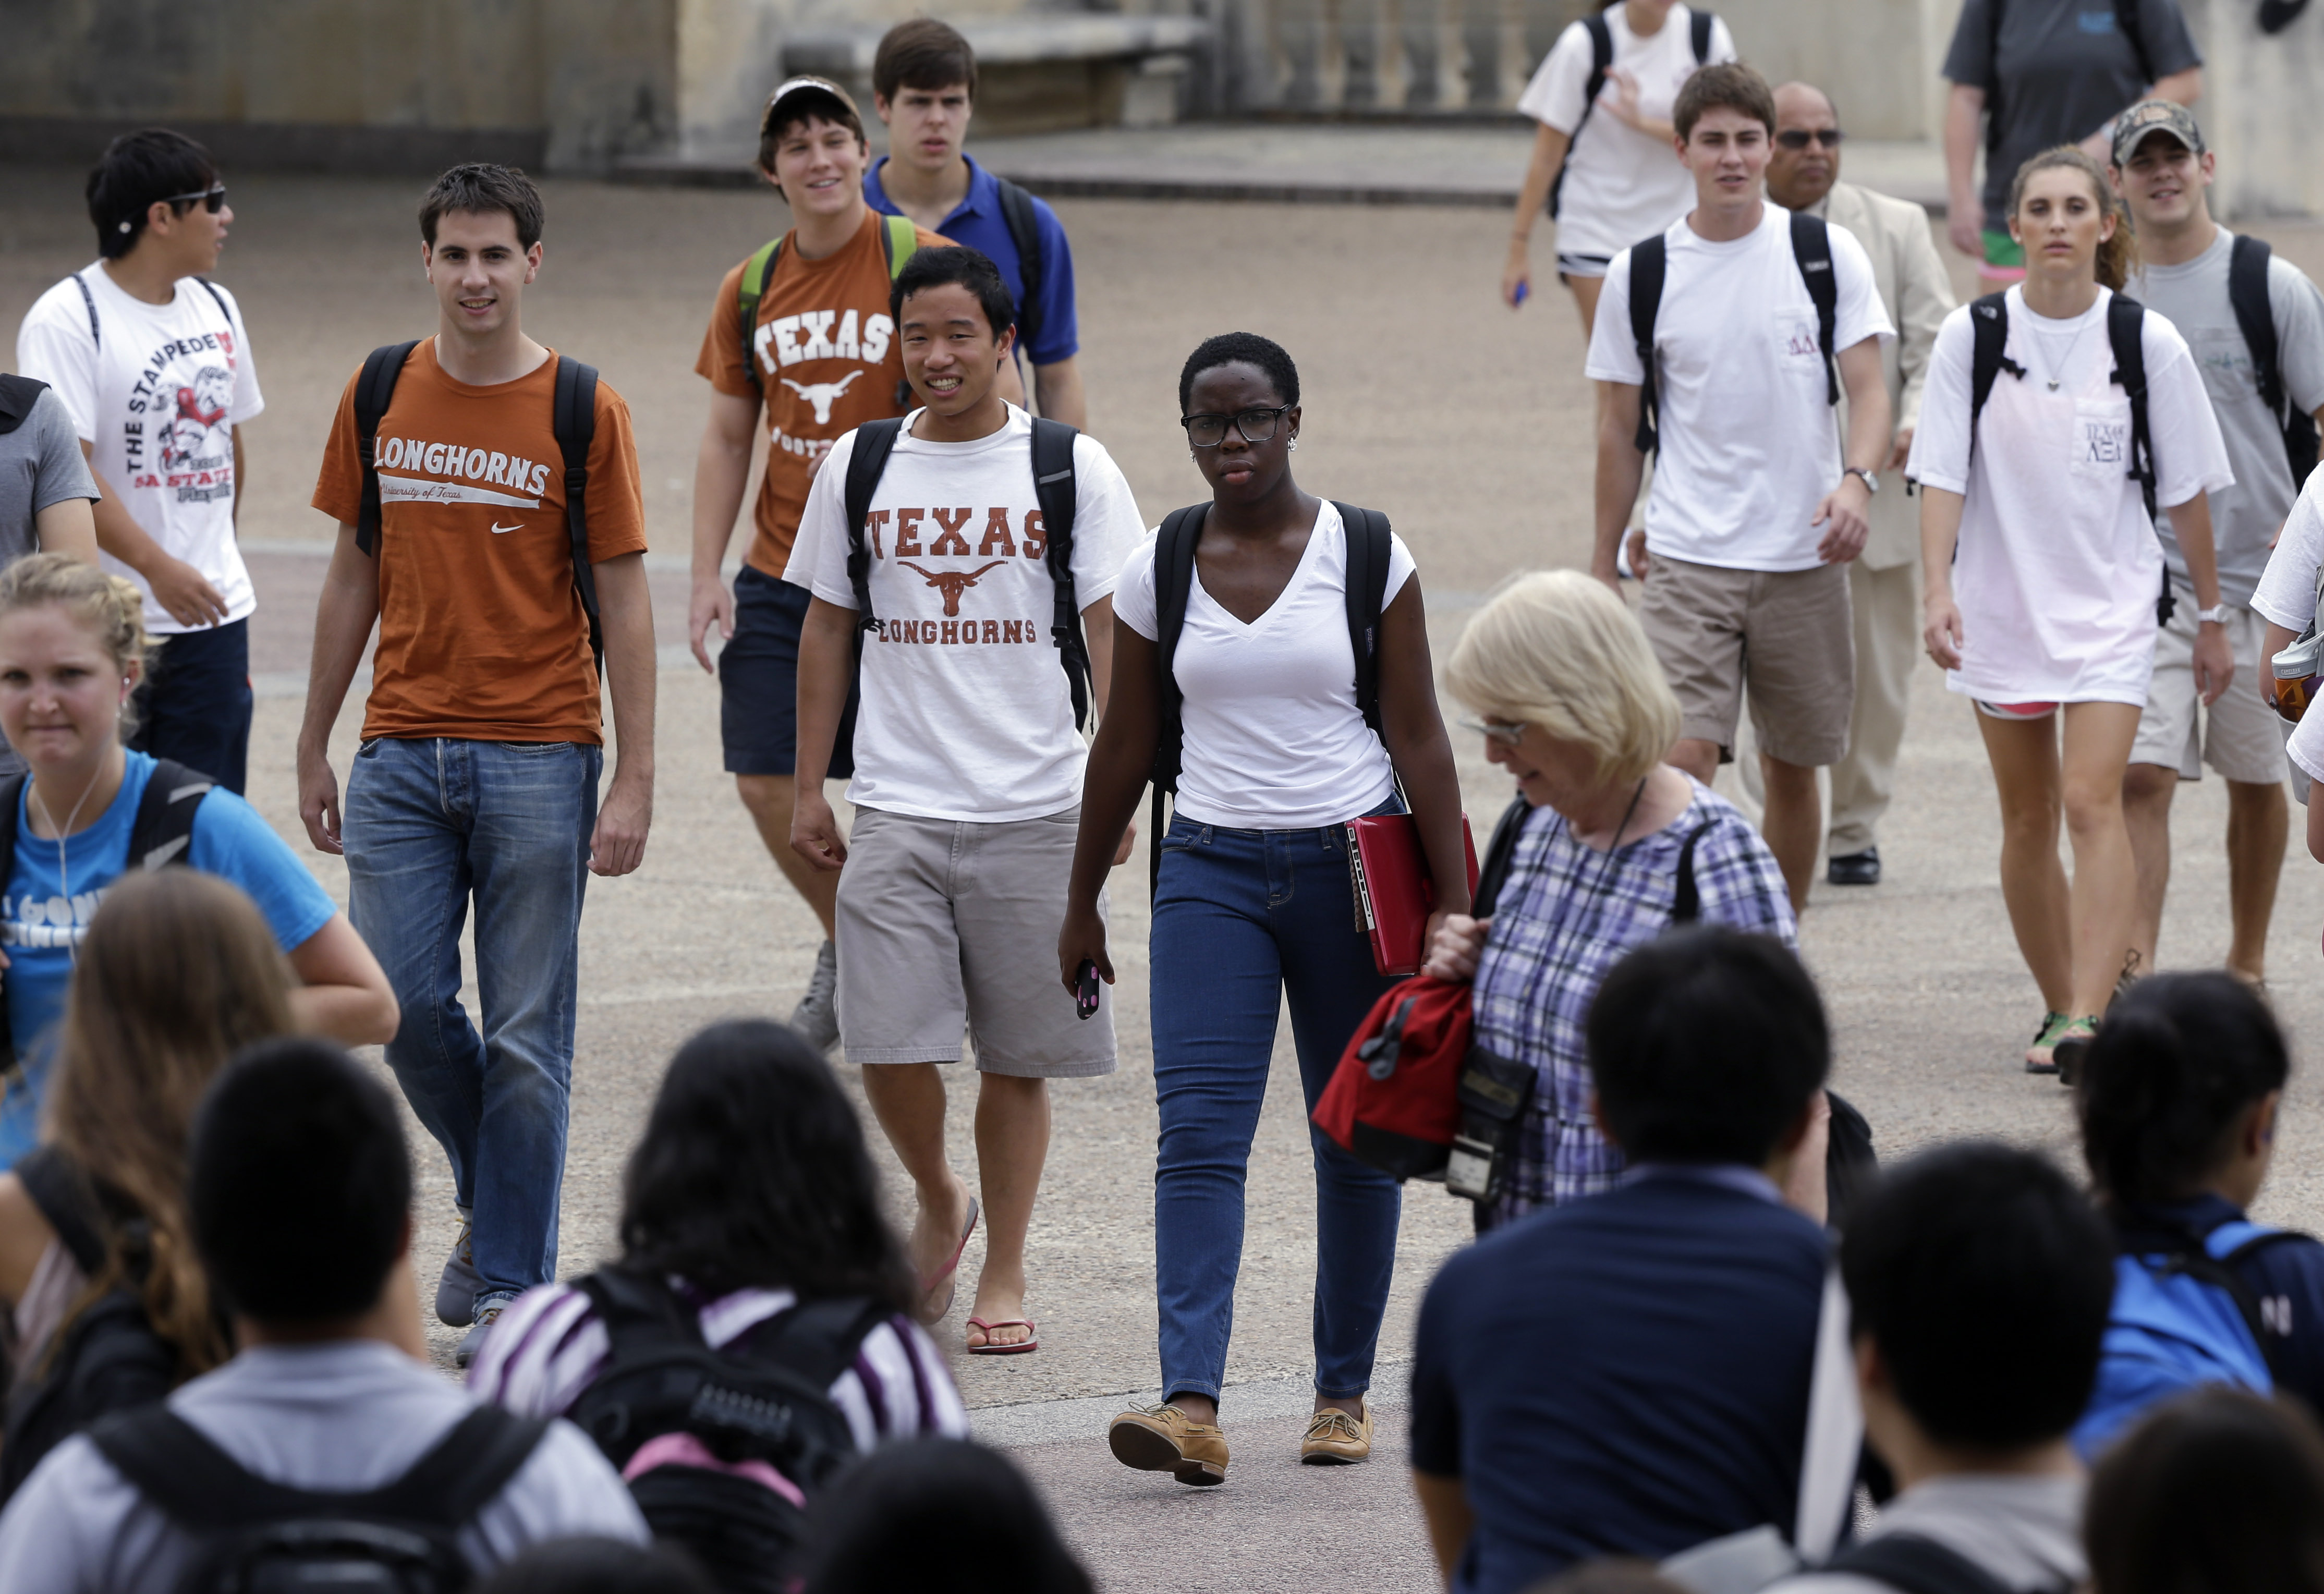 an argument over affirmative action on a highly debated topic This has been the main argument to push forward  affirmative action has been a widely debated topic  this controversy over affirmative action embodies the on.